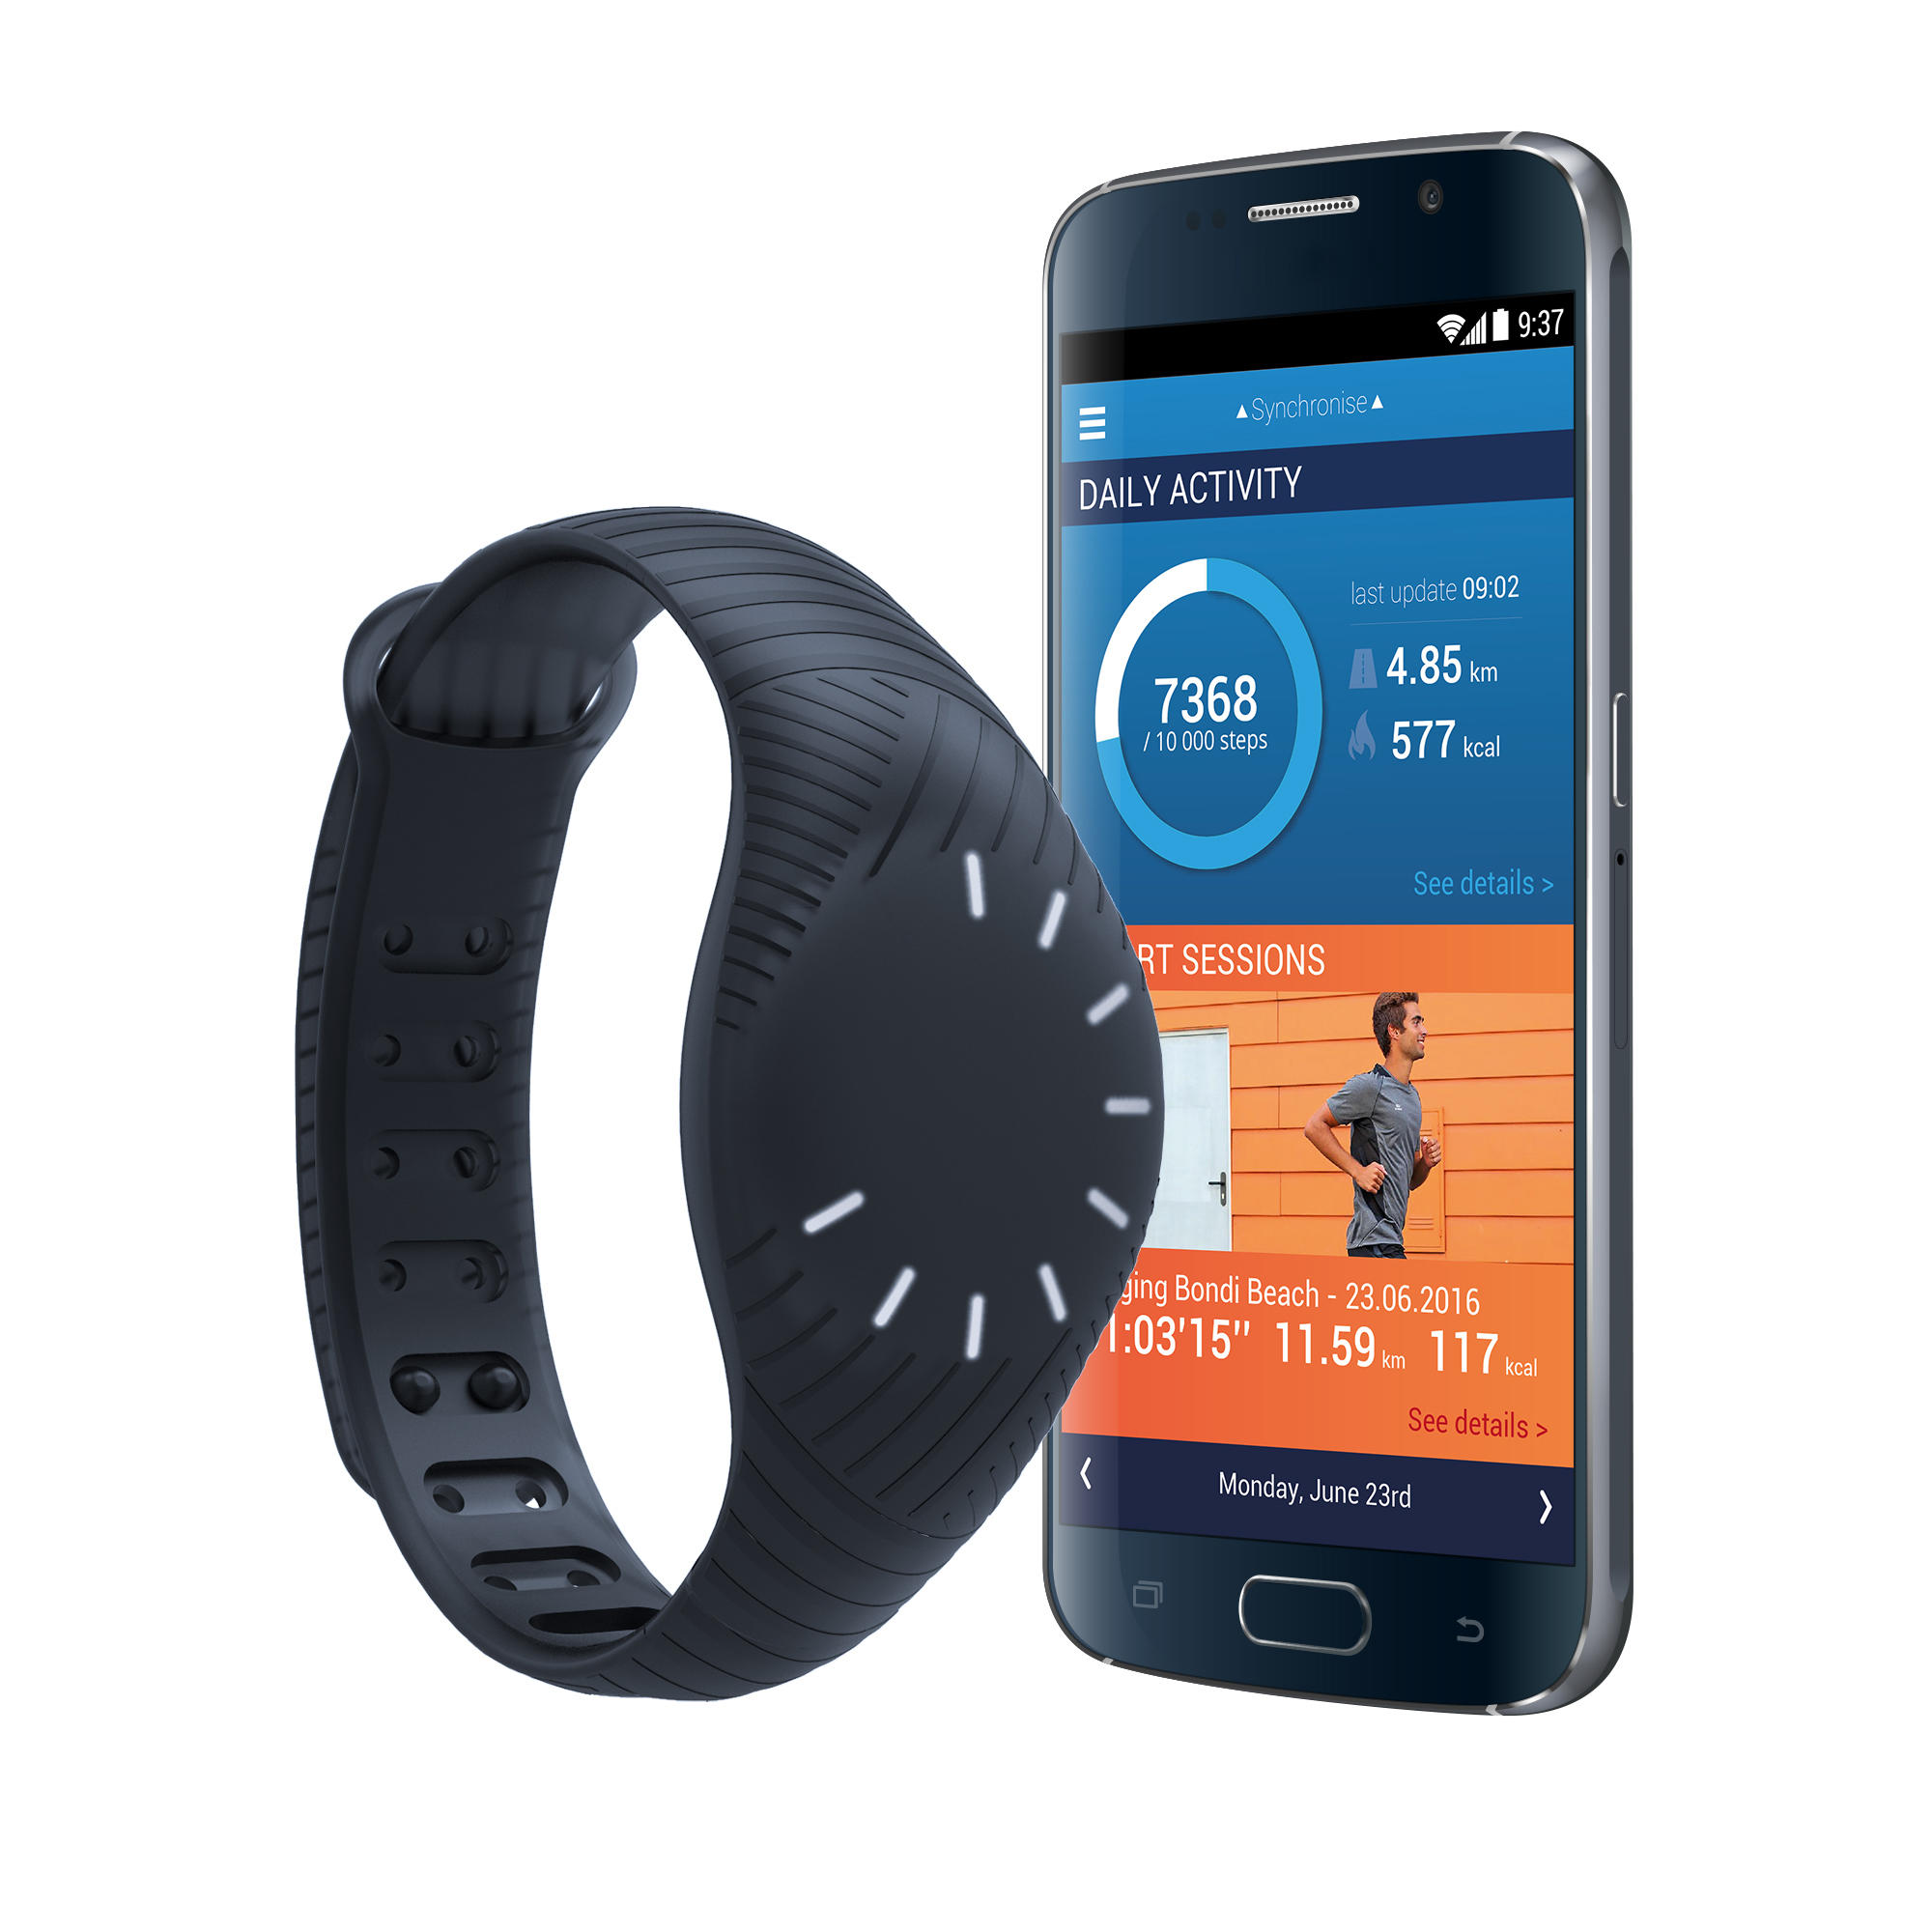 ONcoach 100 CN connected wristband - Black